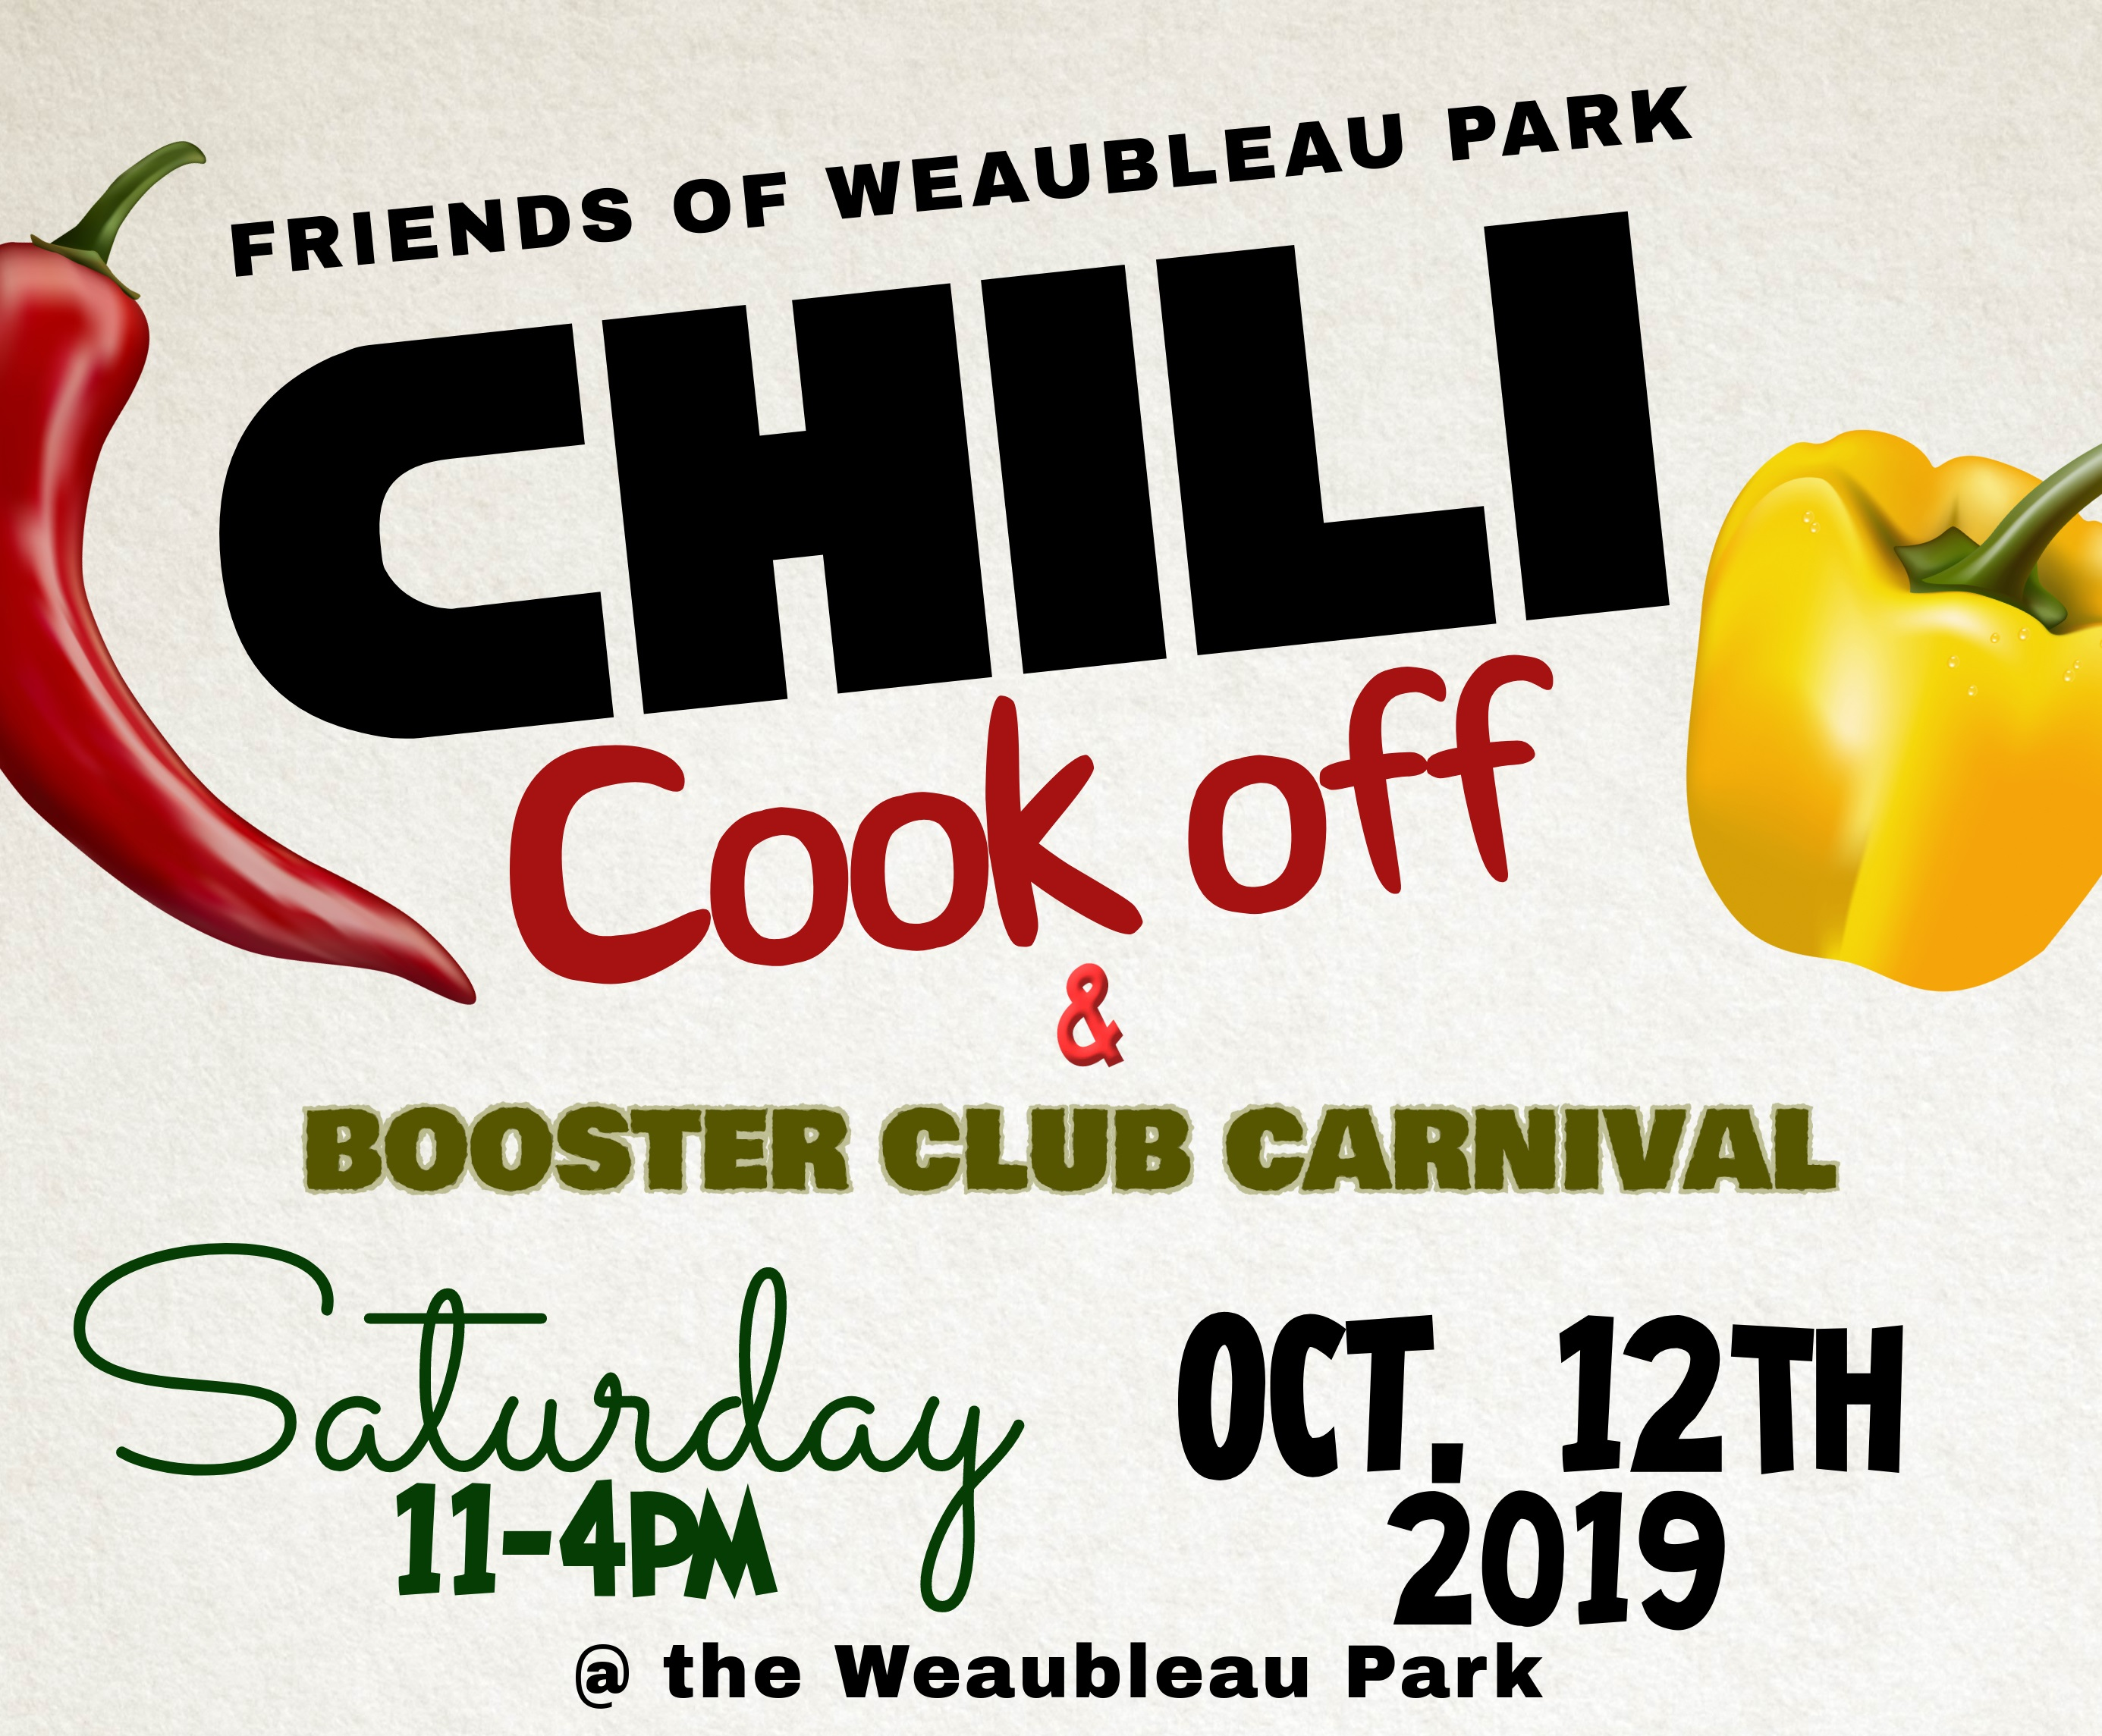 Chili Cook Off & Booster Club Carnival